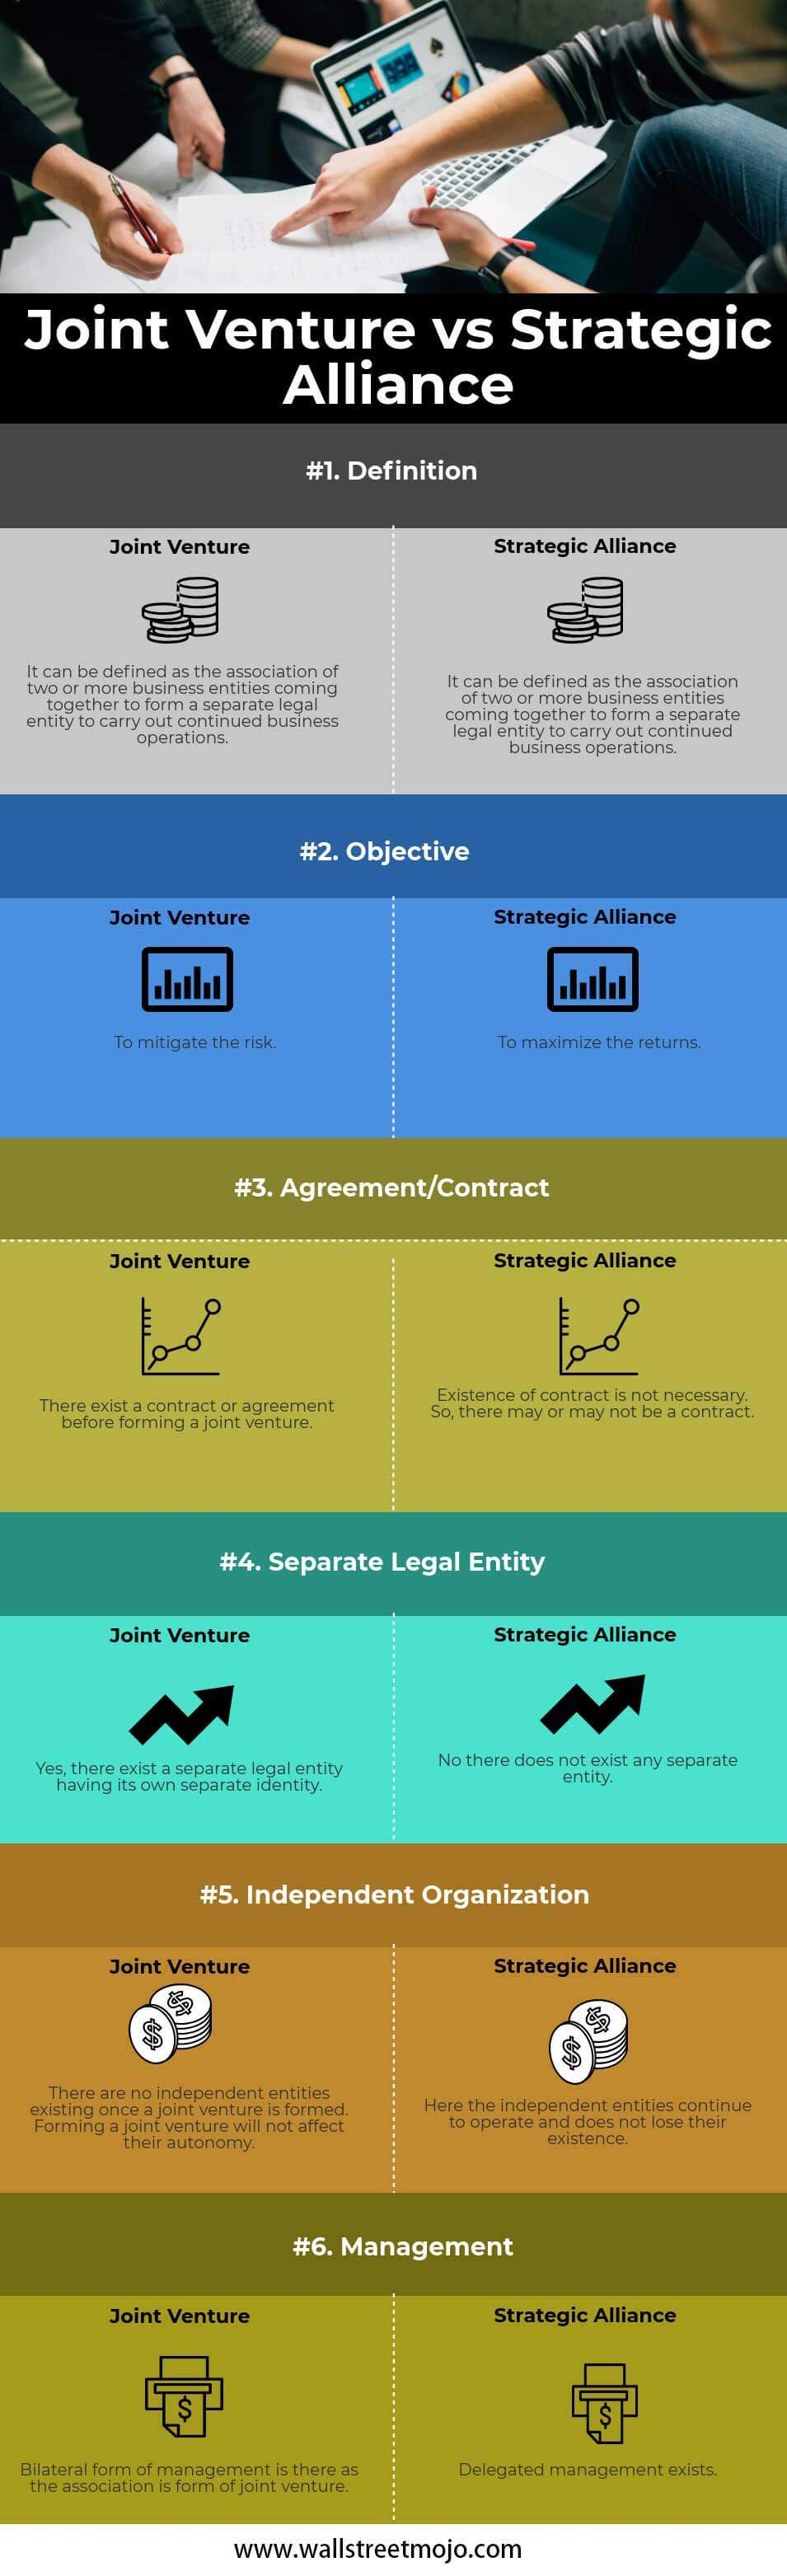 Joint-Venture-vs-Strategic-Alliance-info